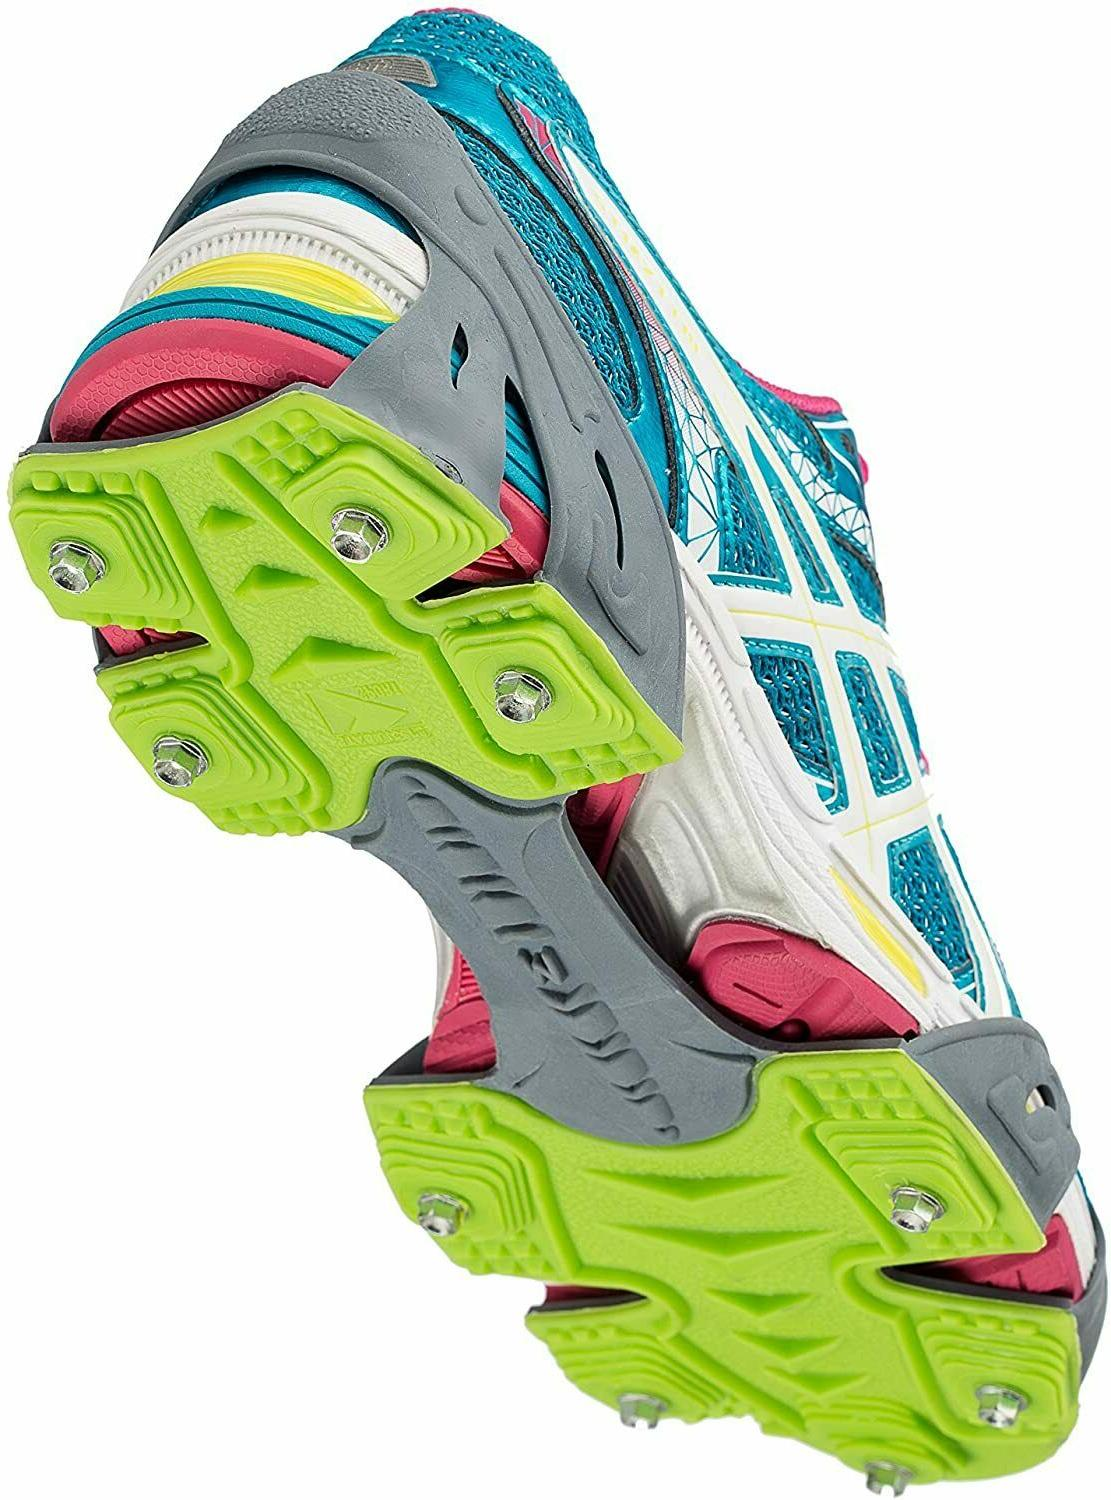 run traction ice cleats for snow